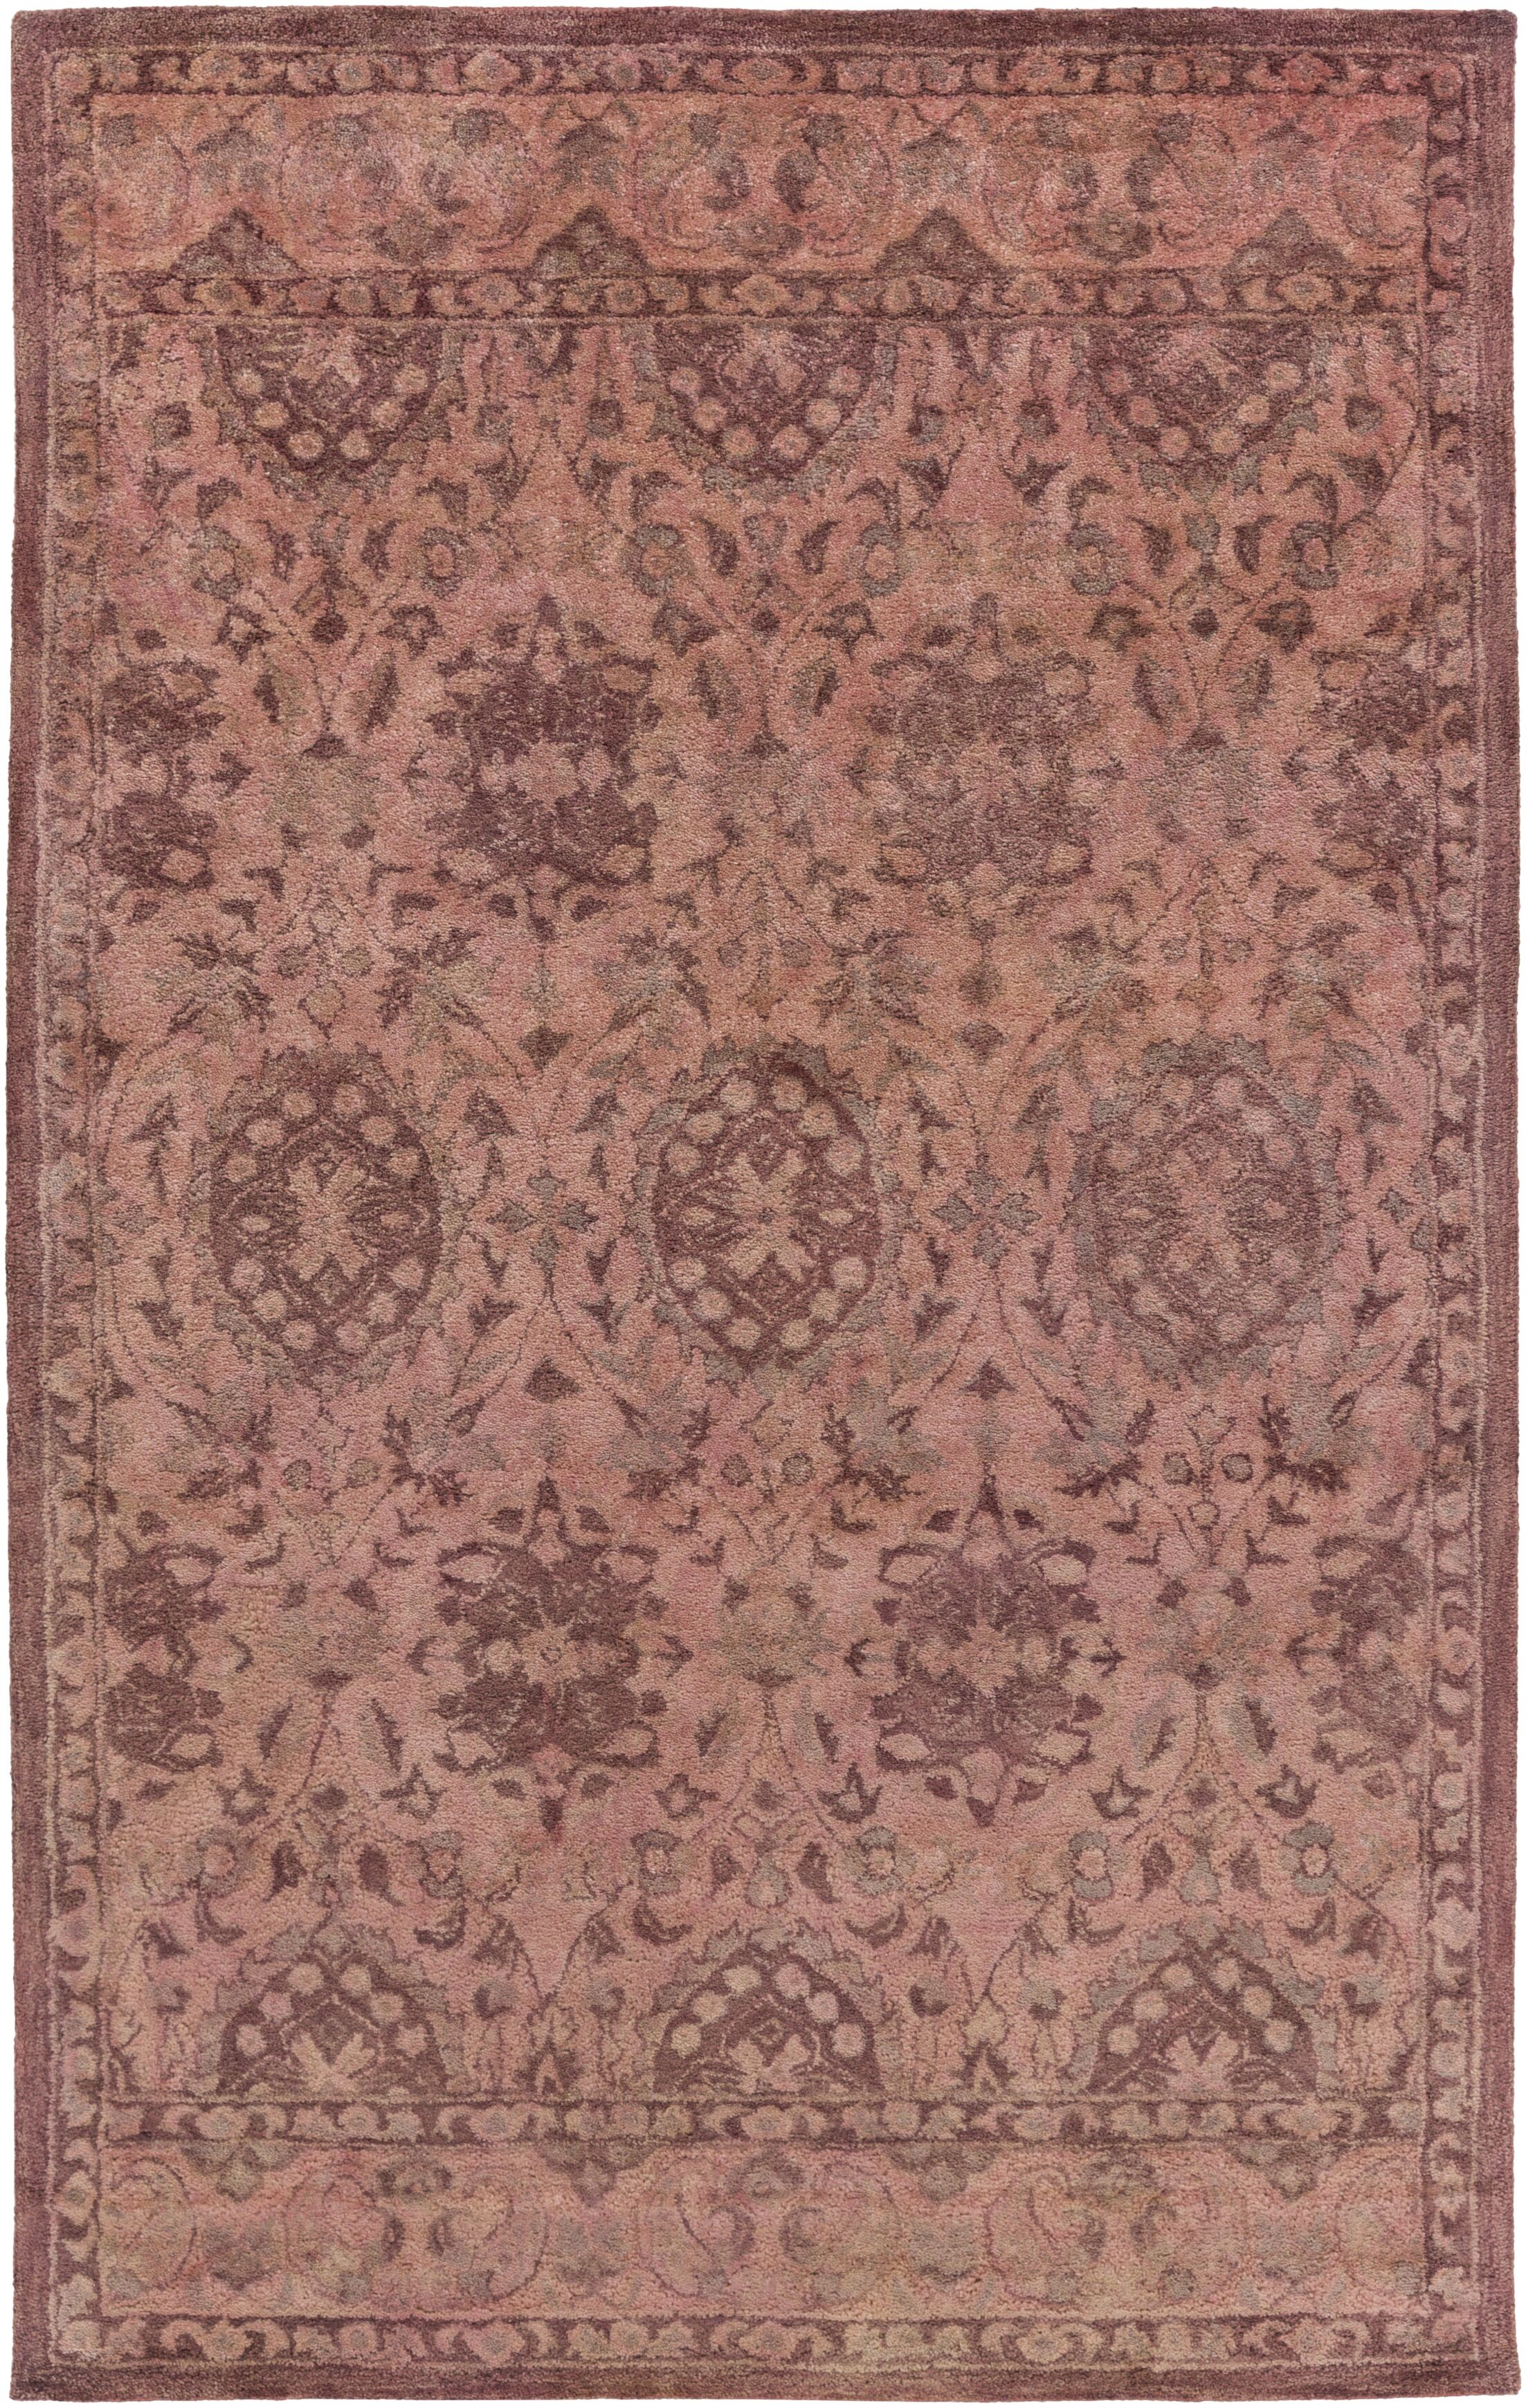 Arensburg Hand-Tufted Salmon/Pastel Pink Area Rug Rug Size: Rectangle 5' x 8'